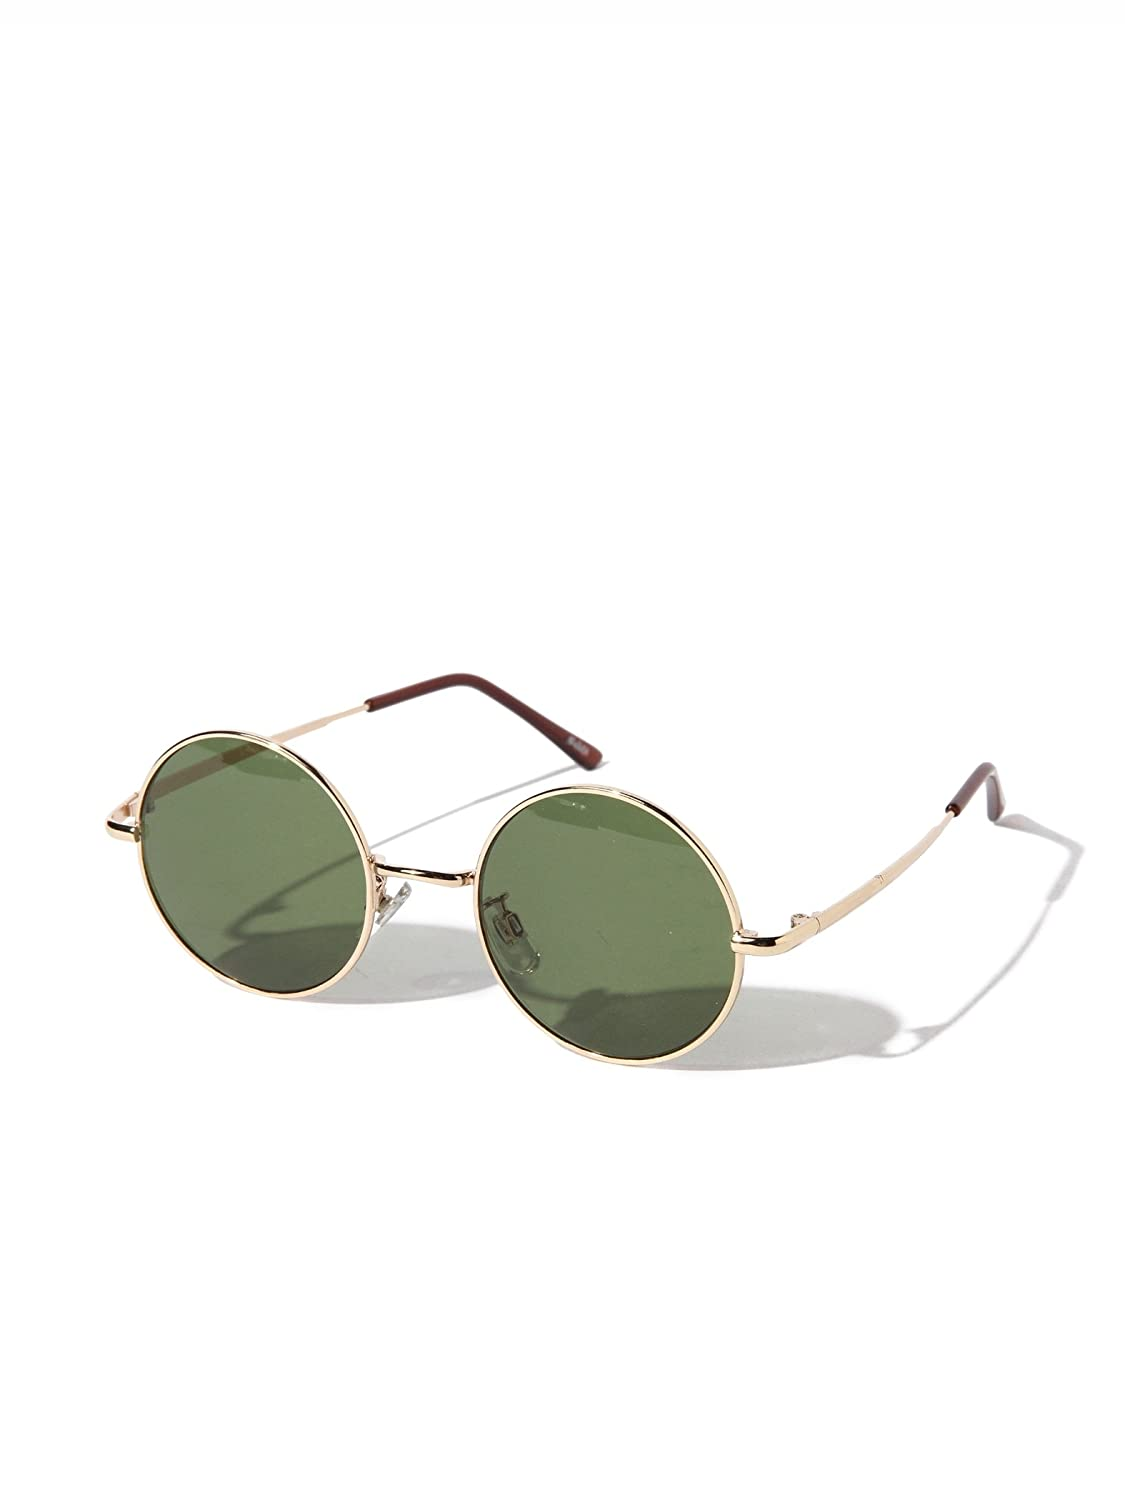 Amazon | (レイビームス) Ray BEAMS NOEYEDIA NE-301 ONE SIZE GOLD/GREEN | サングラス 通販